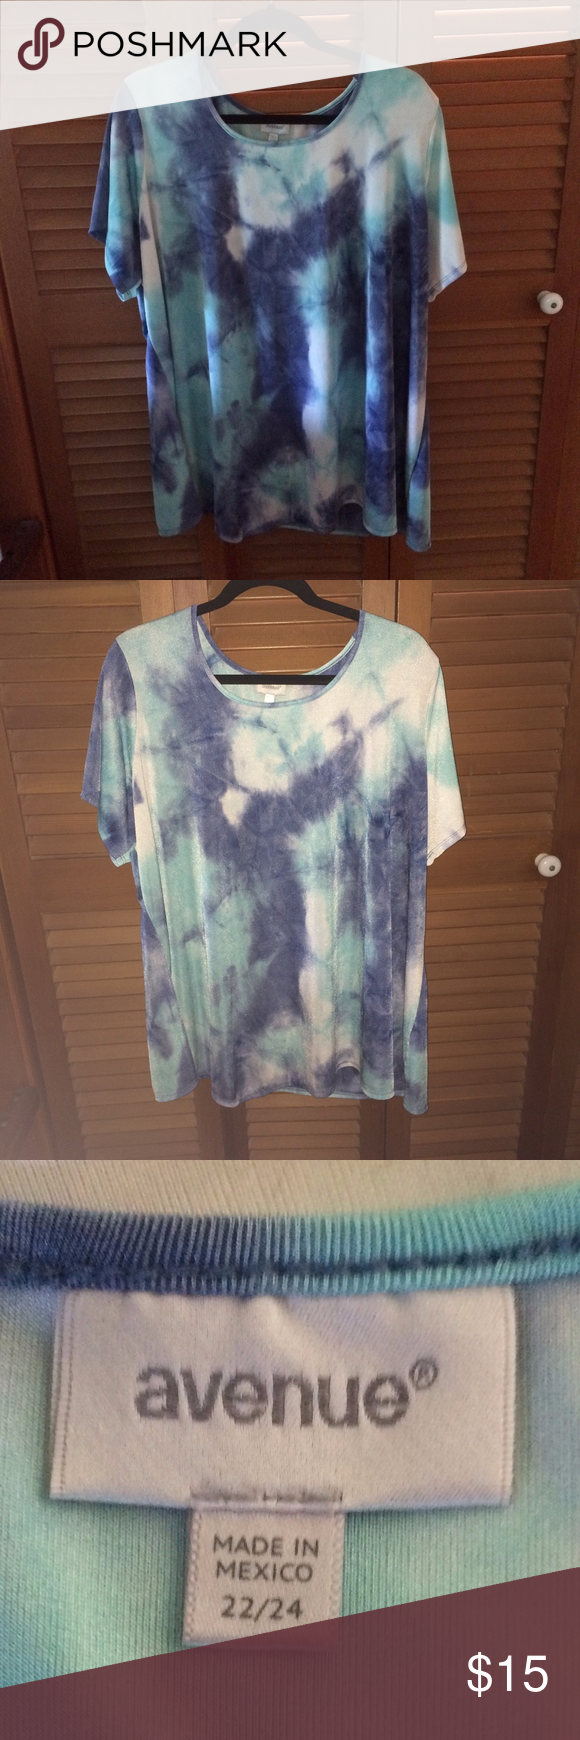 Avenue Summer Tunic Top This Avenue tunic top is a mix of summer blues. A swirl of Pantone 337C and Pantone PMS 2995. I might call the lighter blue Antique Glass and the darker blue Hale Navy (care of Benjamin Moore Paint). This is a tunic length for me, and I am 5'1